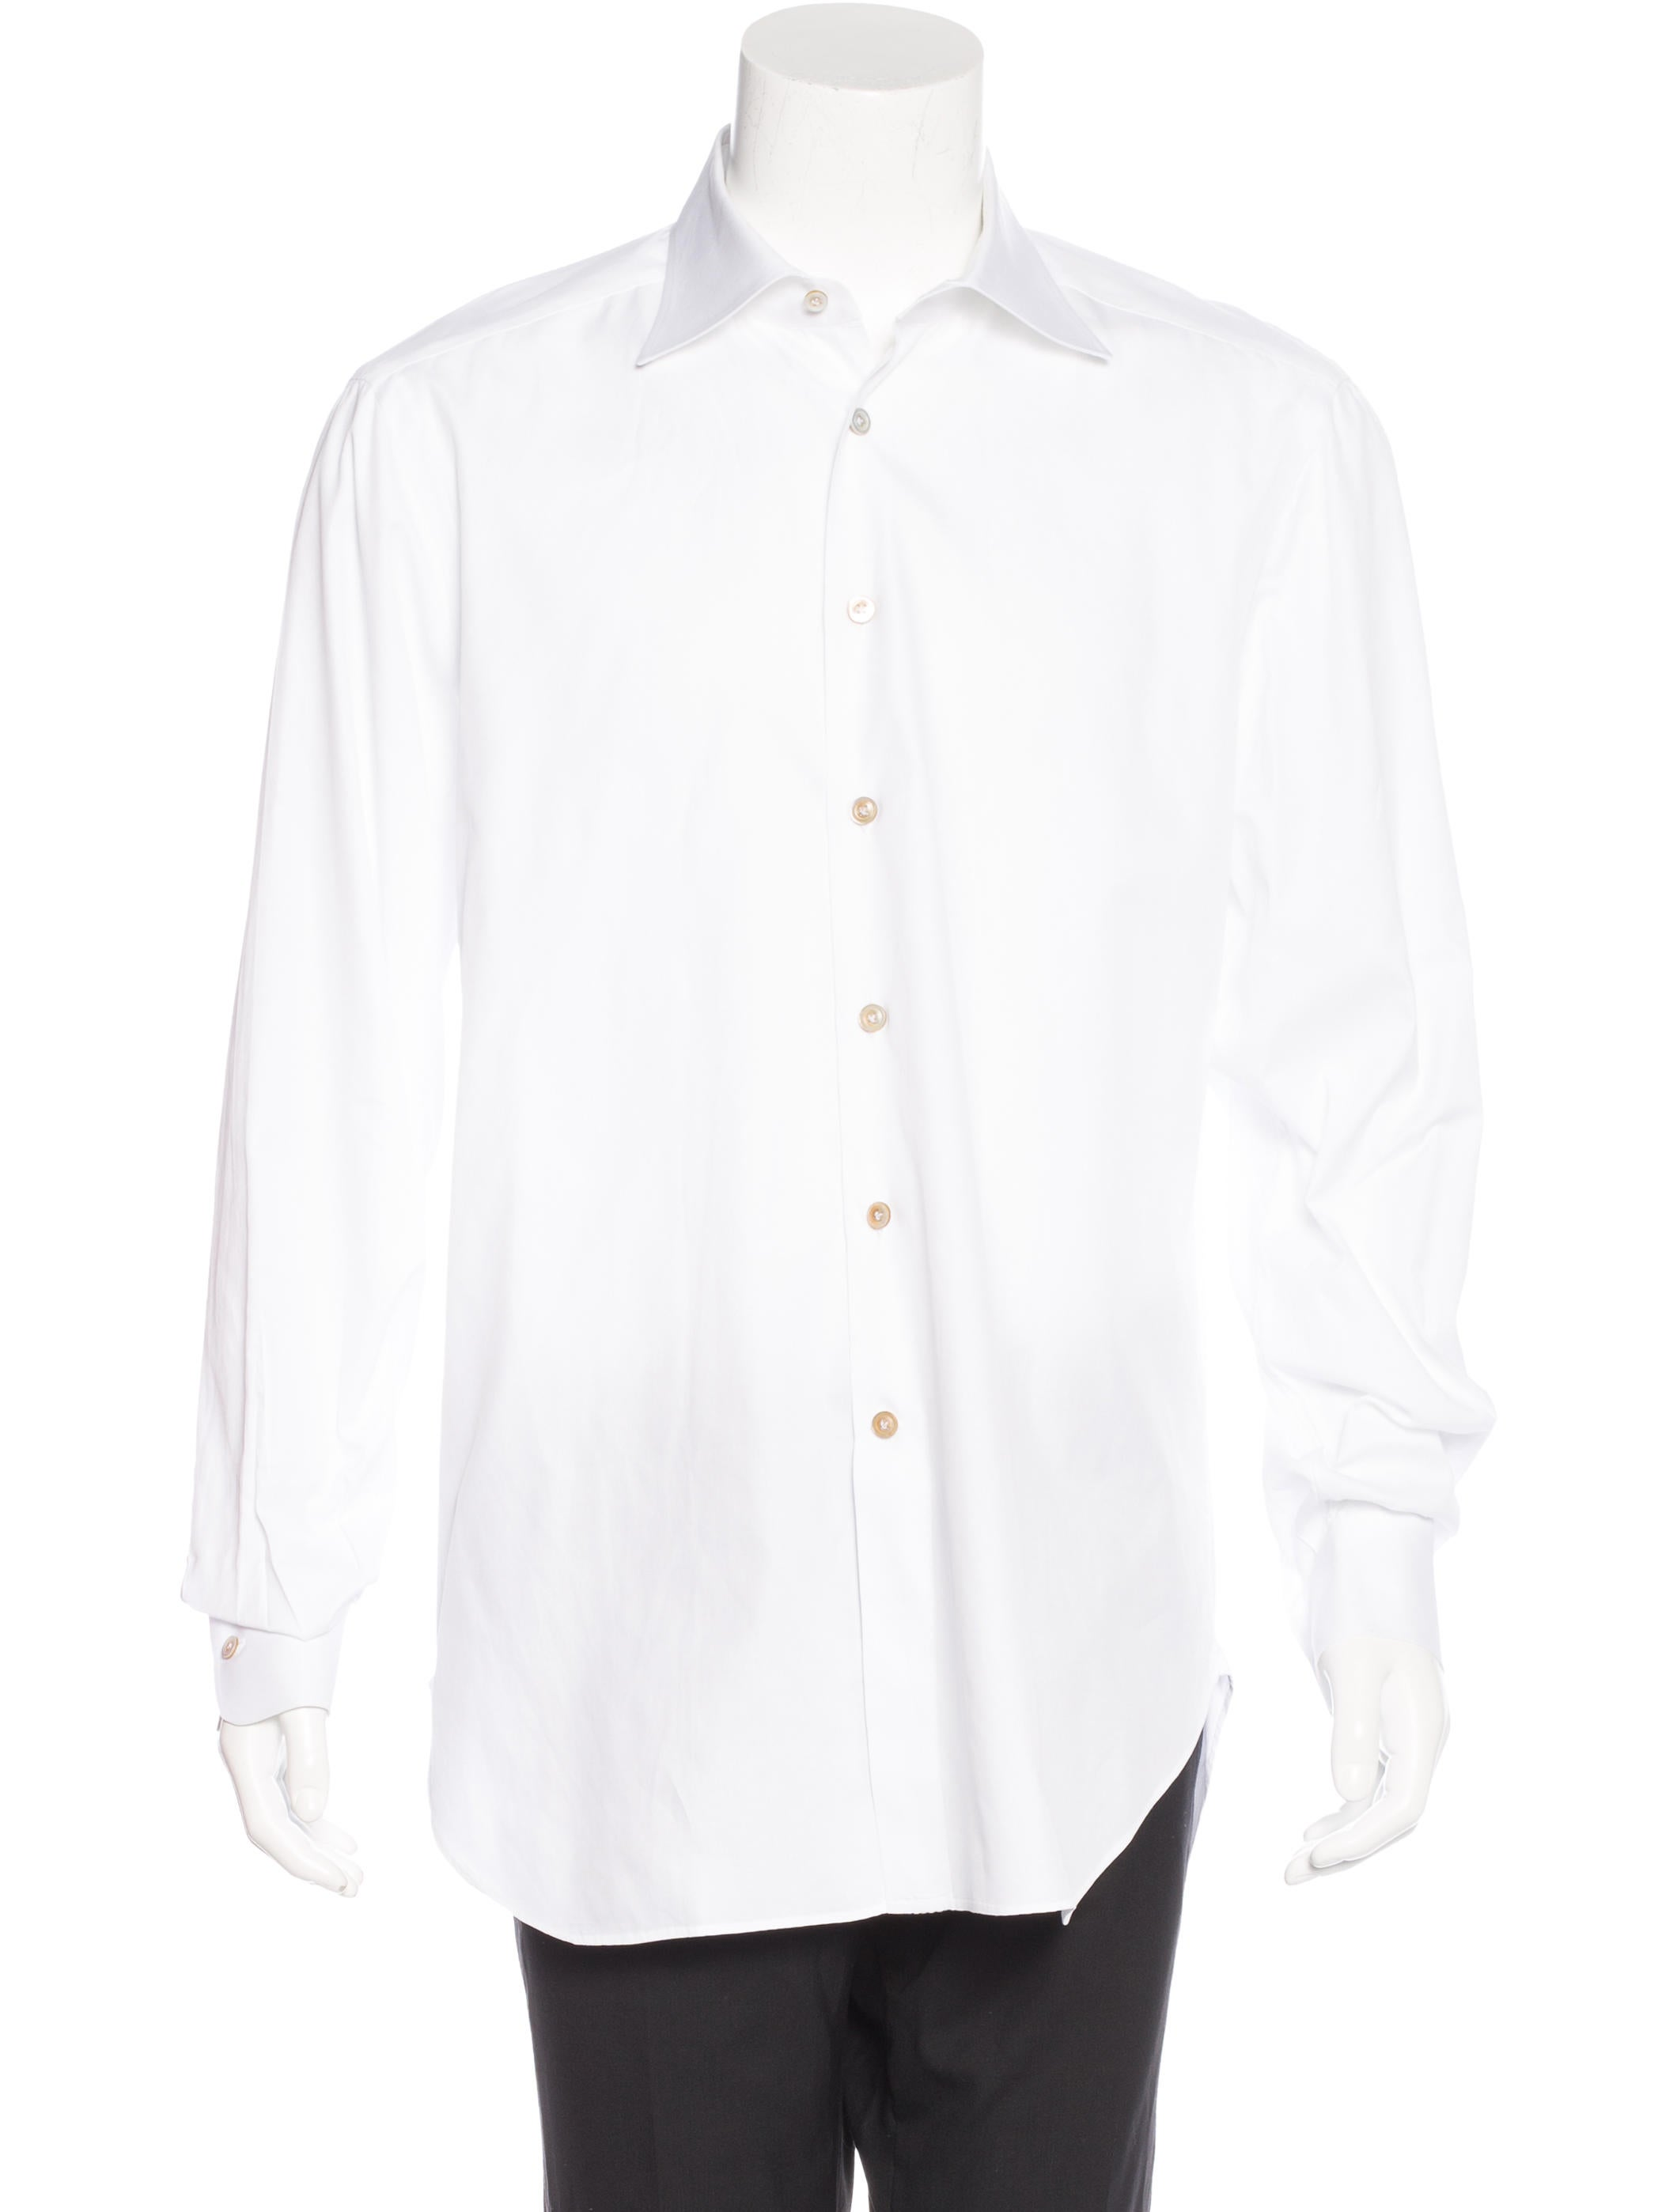 Kiton french cuff button up shirt clothing kit21390 for Pin collar shirt double cuff